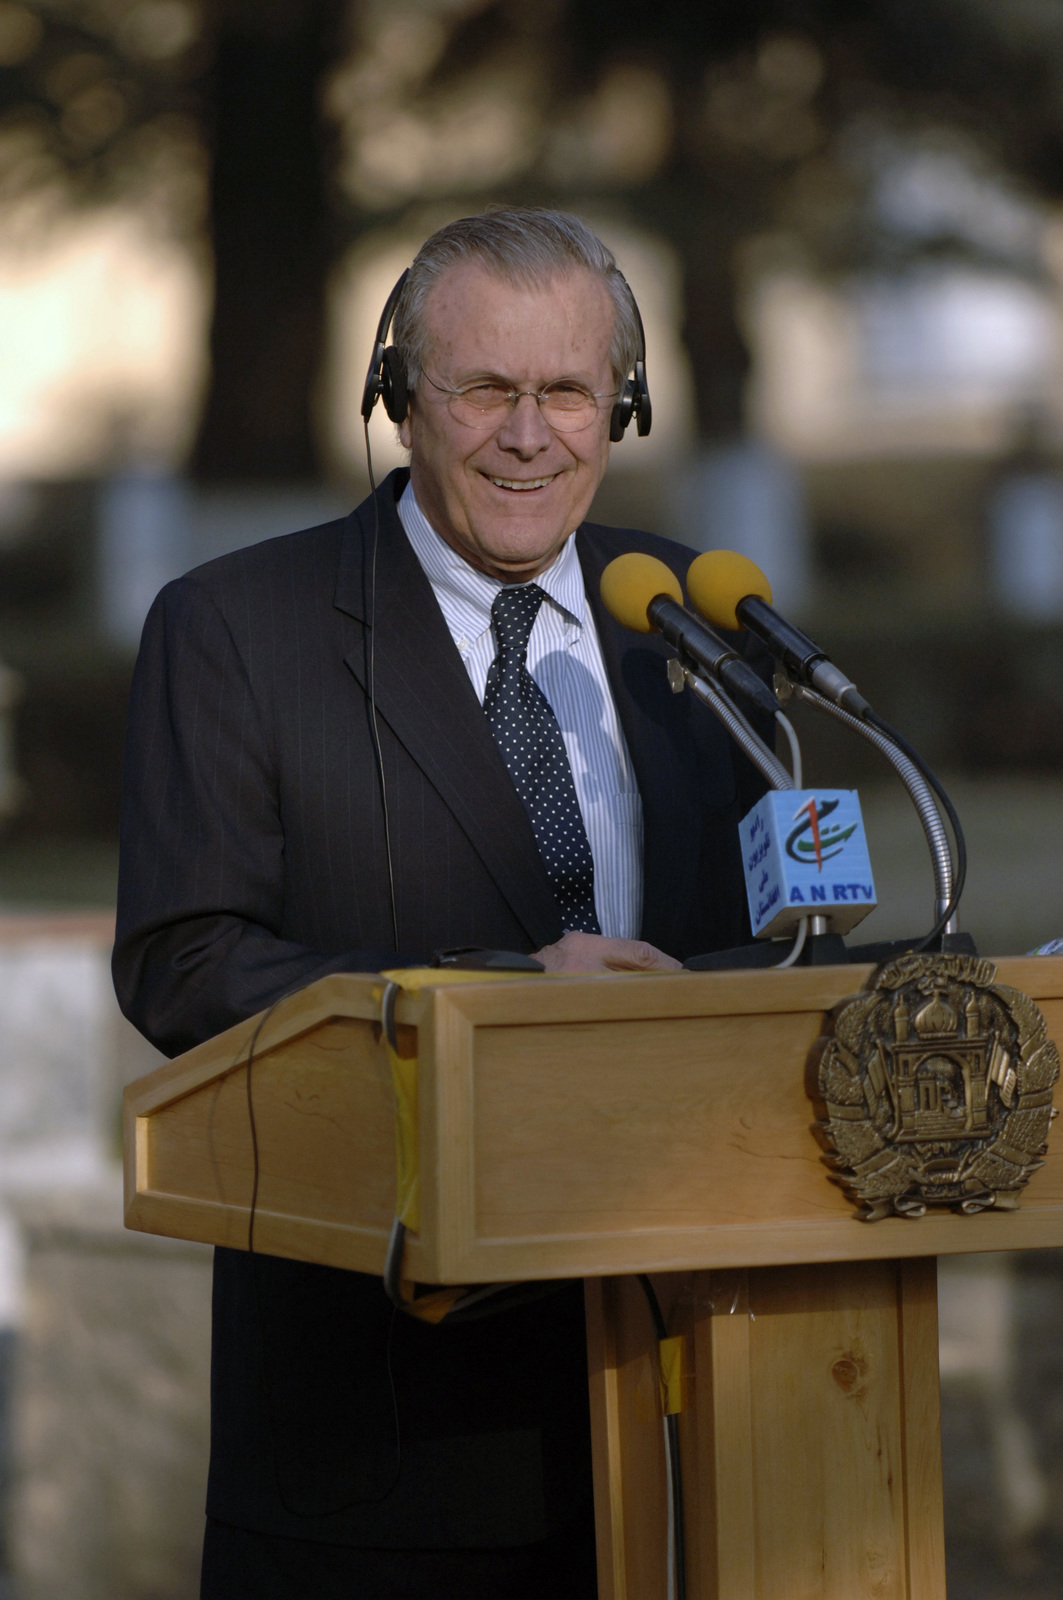 The Honorable Donald H. Rumsfeld, U.S. Secretary of Defense (SECDEF), responds to questions at a joint press conference with Hamad Karzai, President of Afghanistan, in Kabul, Afghanistan, Dec. 21, 2005, announcing U.S. Troop reduction in the area.  The SECDEF is in country after visiting the affected areas of the Oct. 8, 2005 earthquake in Pakistan and to support the U.S. Service Members of the region.  (DoD photo by PETTY Officer 1ST Class Chad J. McNeeley) (Released)